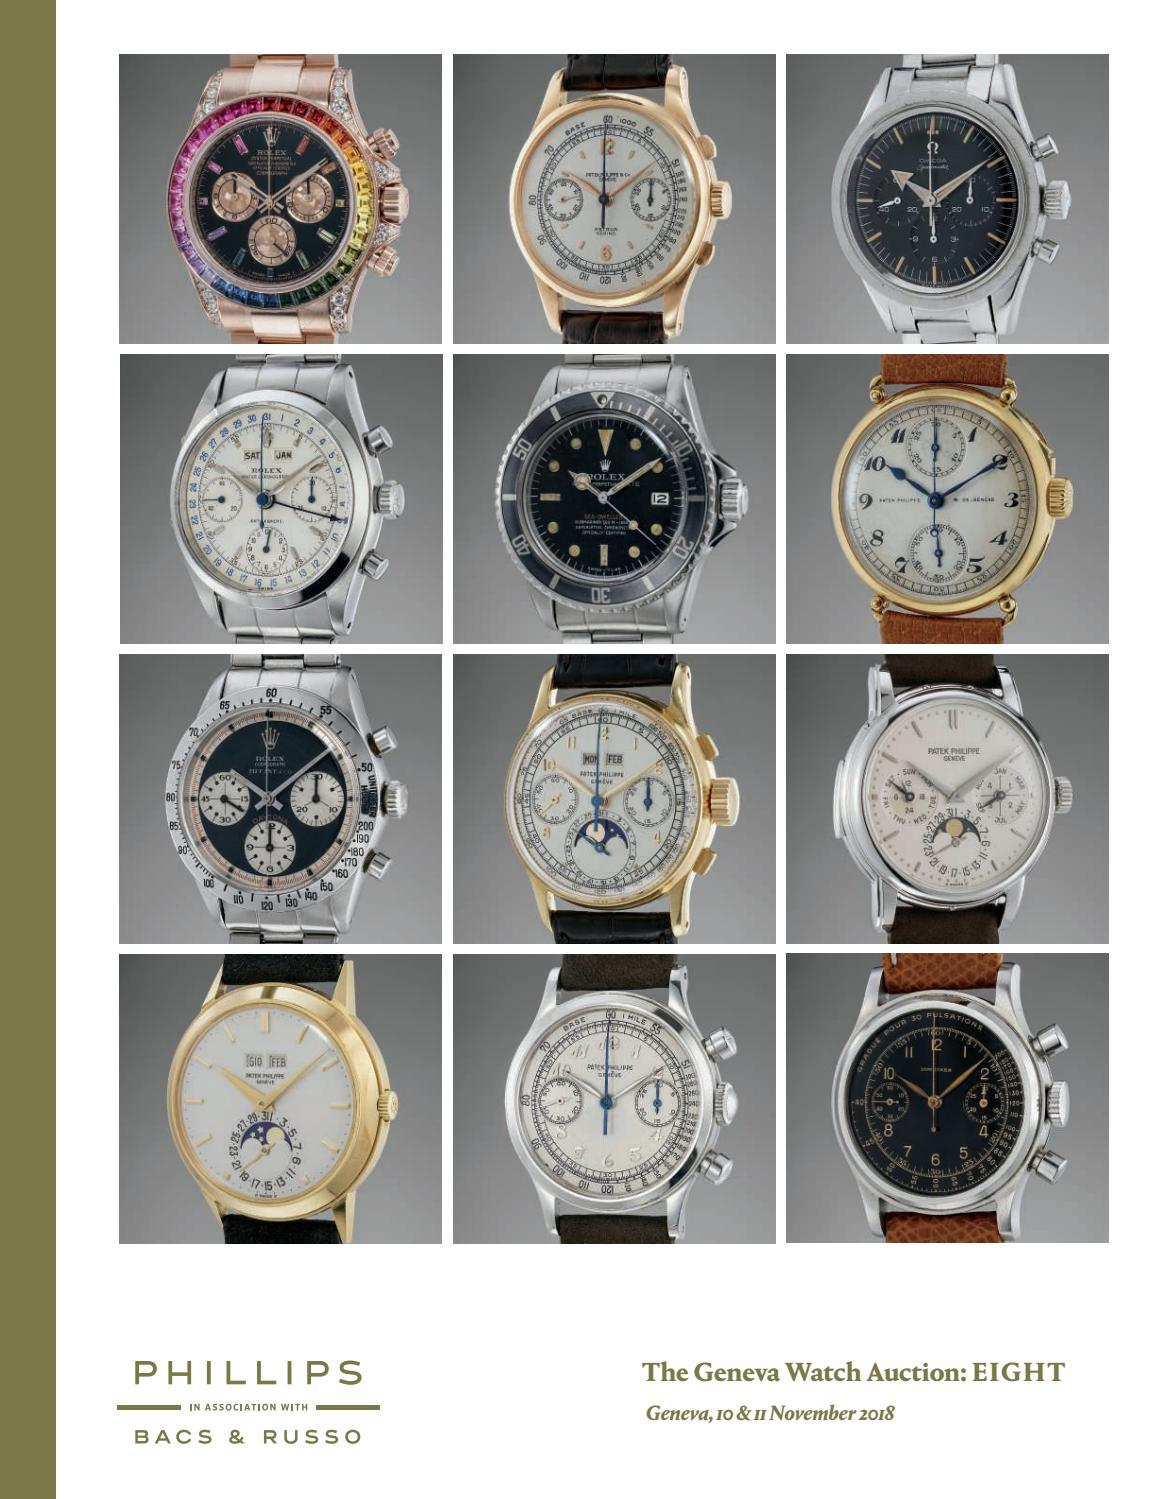 the geneva watch auction eight catalogue phillips issuu page lovell accent table target marble stone dining end with drawer and door counter height kitchen chair sets small